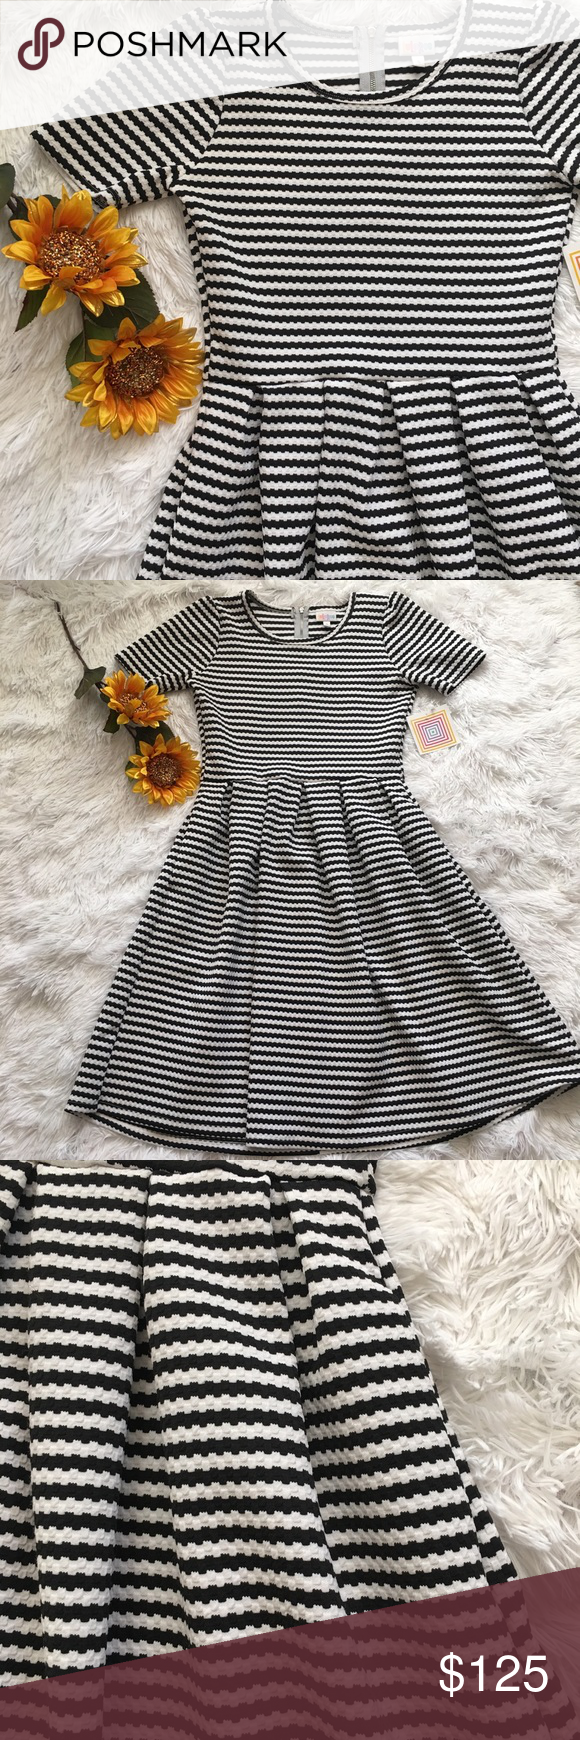 Lularoe Amelia vintage black & white stripes YOUR time is VALUABLE ⏳, so I have searched high and low for this limited edition, hard to find, rare unicorn treasure 🦄✨ This print symbolizes something you love ❤️  You WANT IT NOW, and here it is 🤗 💋Treat yo self 💐  💌please, no rude comments LuLaRoe Dresses Midi